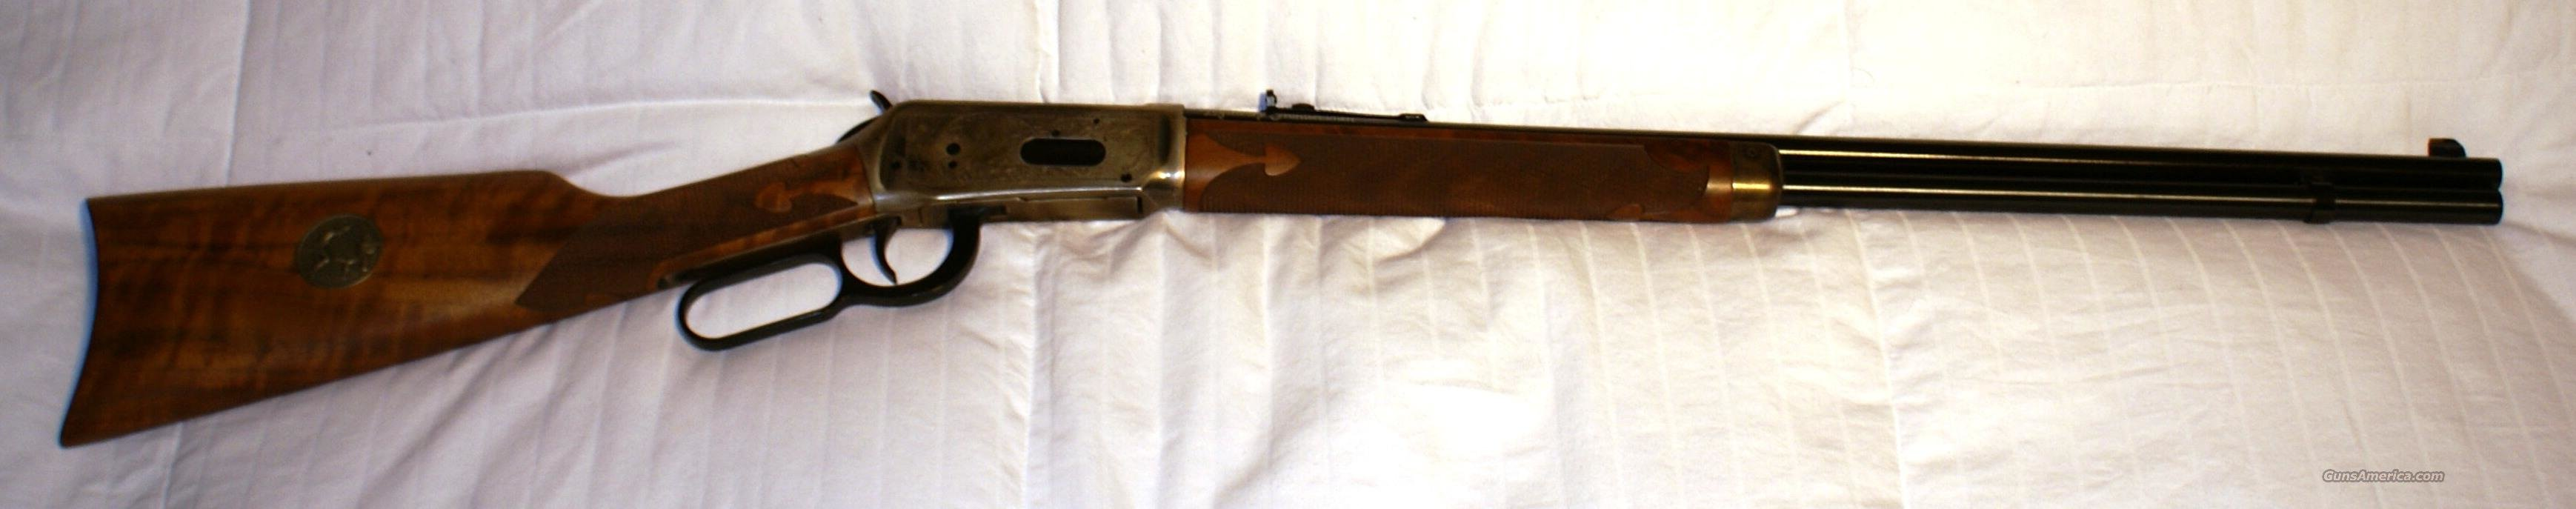 WINCHESTER LEGENDARY FRONTIERSMAN 38-55  Guns > Rifles > Winchester Rifle Commemoratives